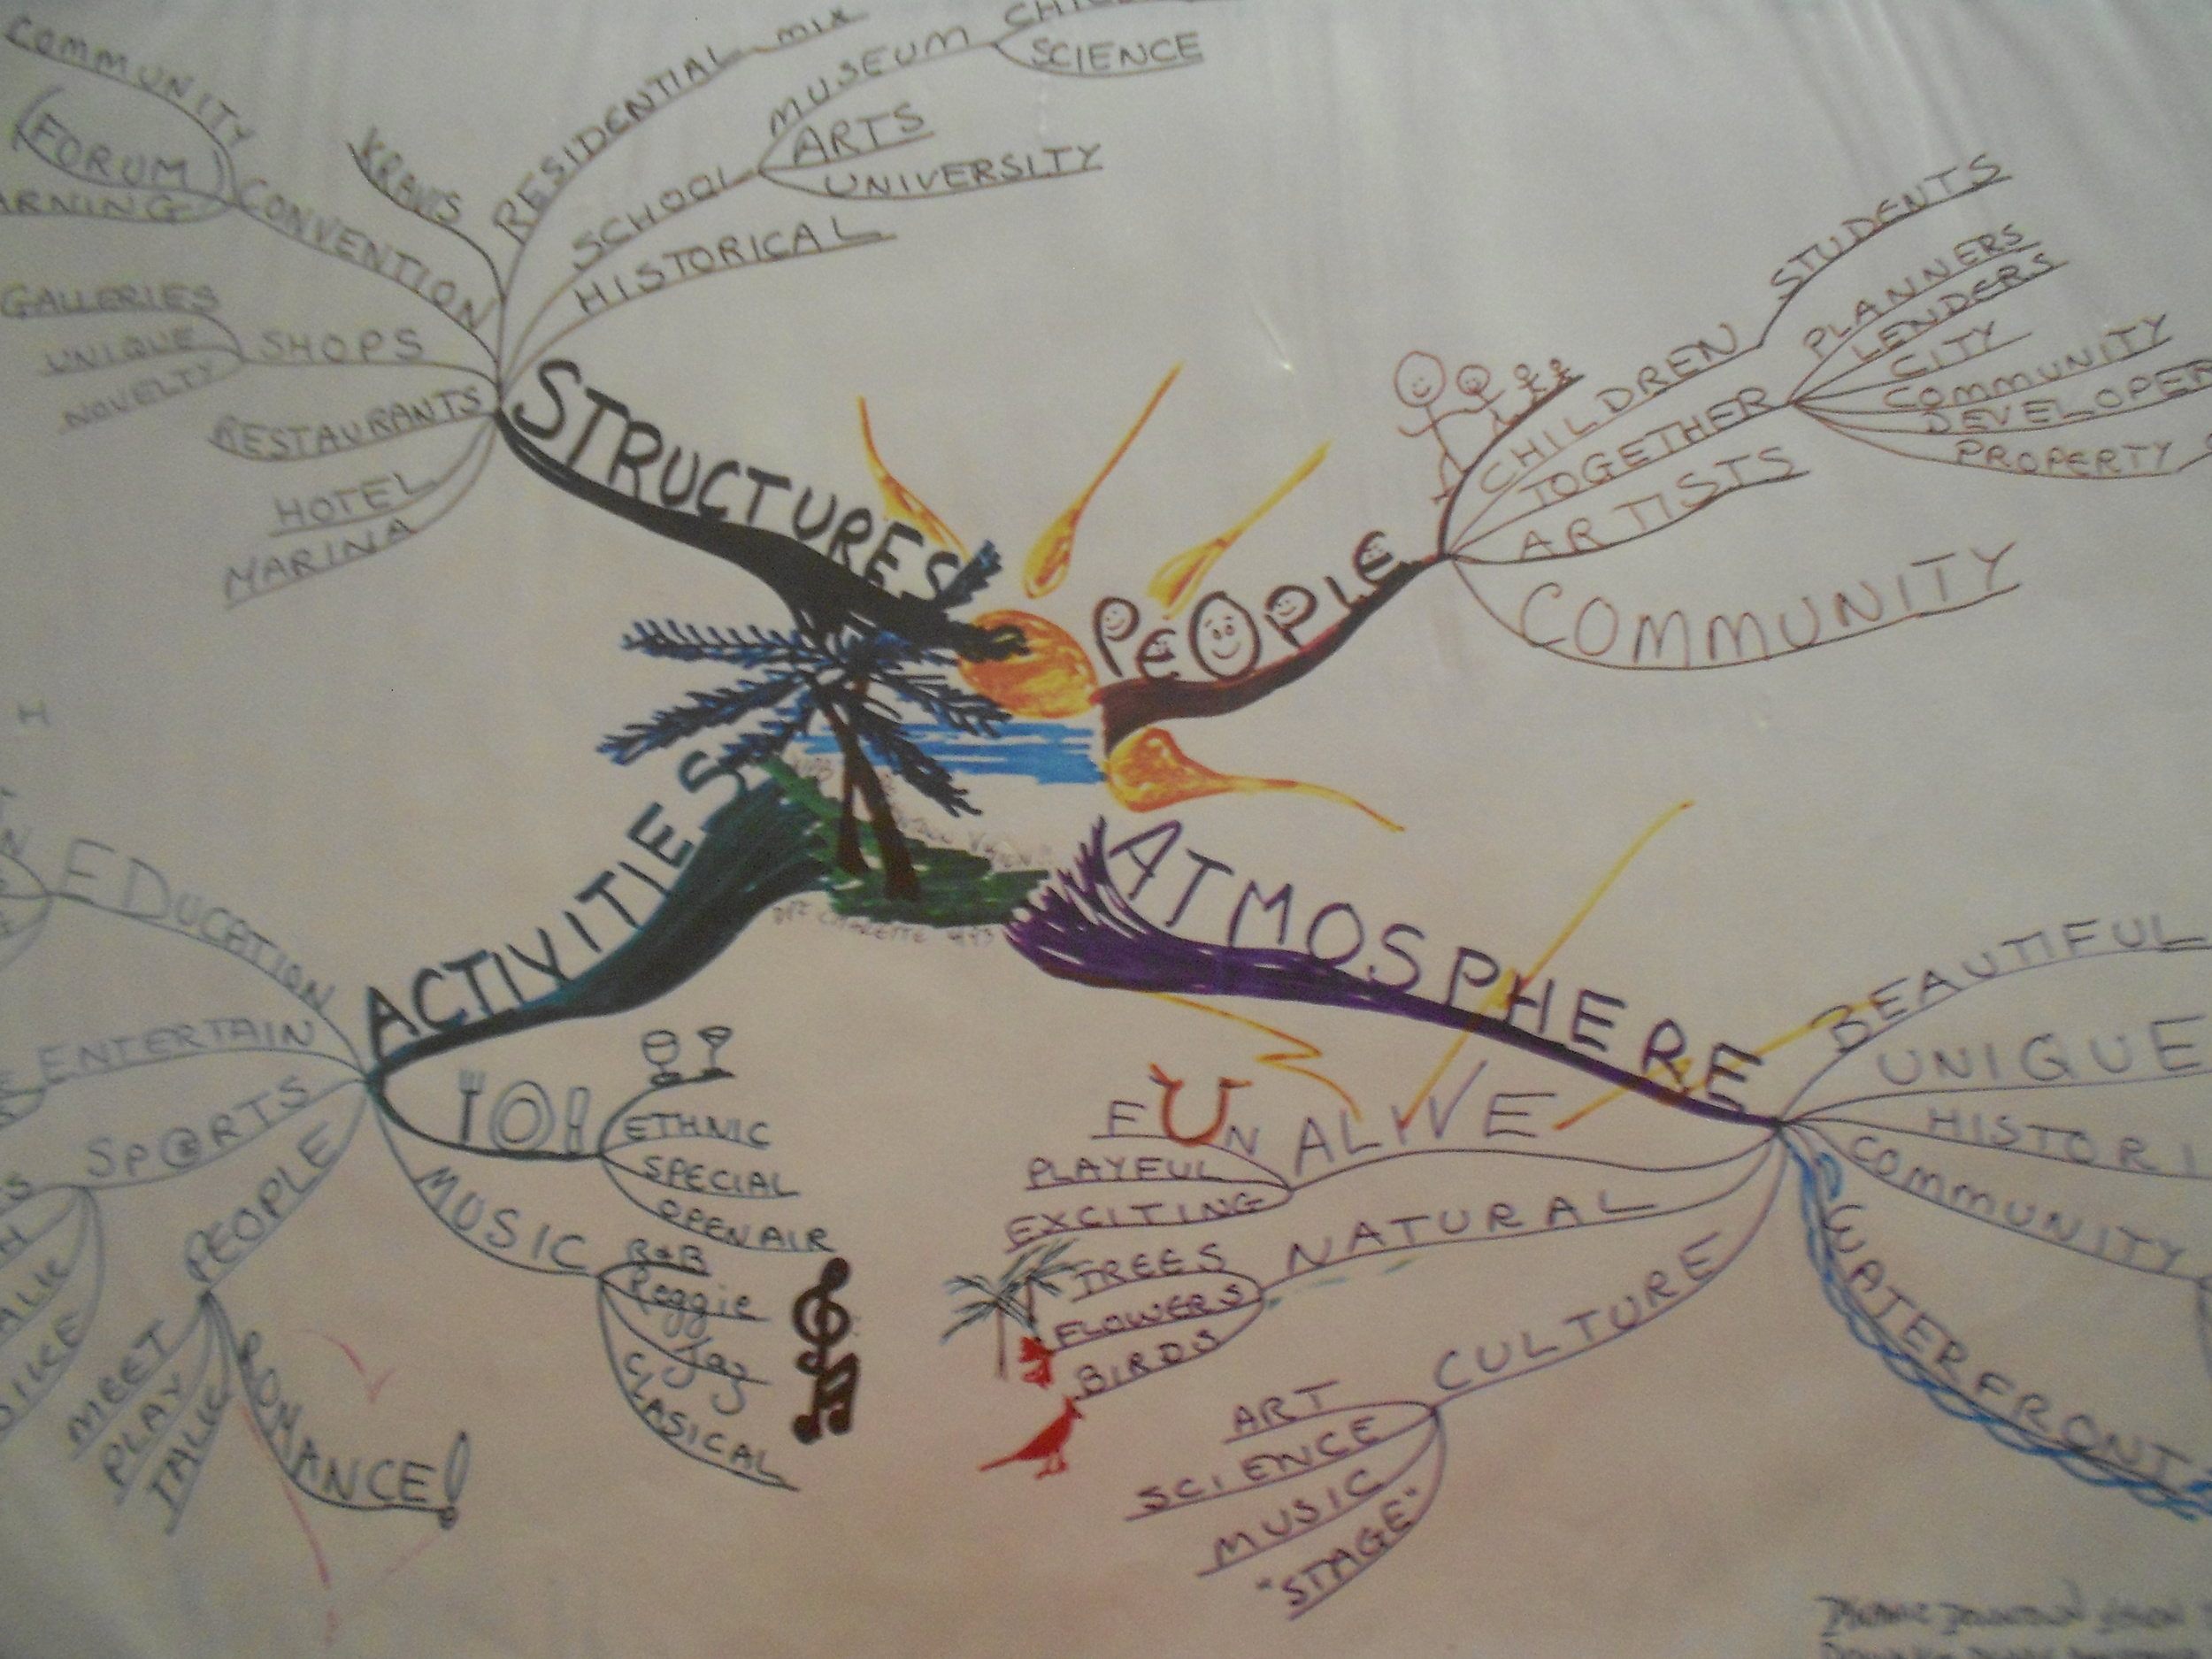 Mind Map of elements desired in developing a city downtown